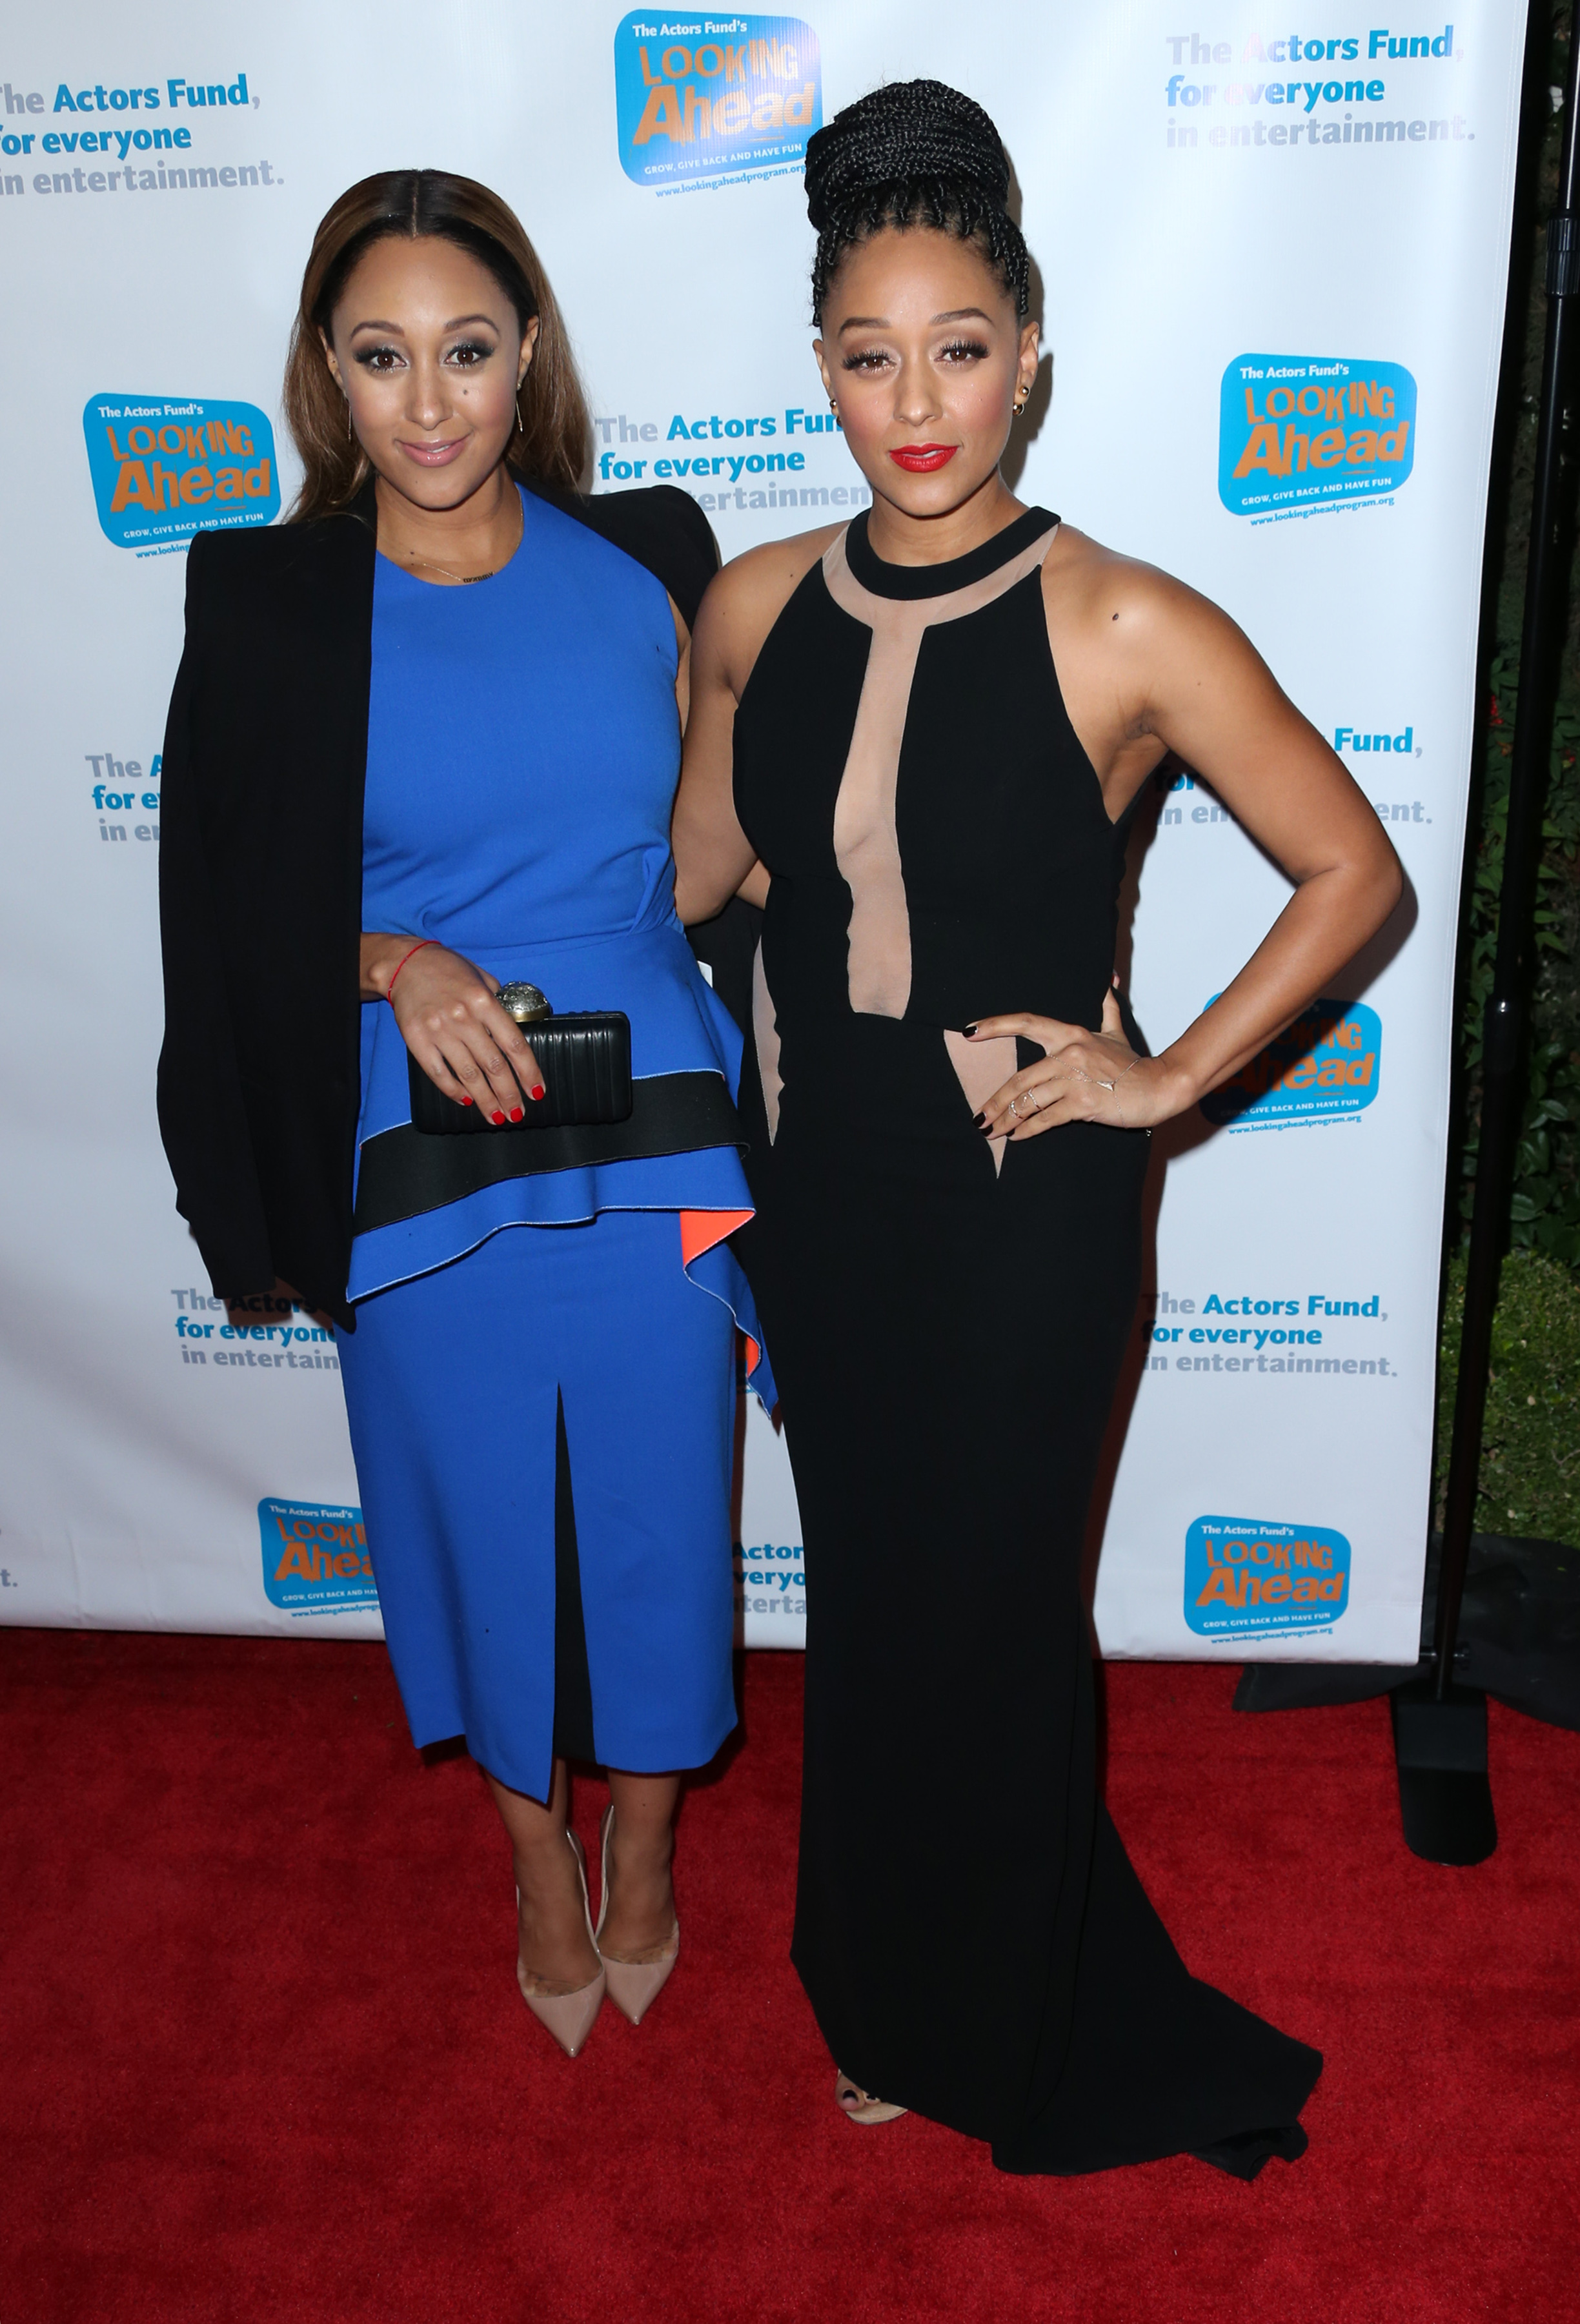 The Actors Fund 2014 The Looking Ahead Awards